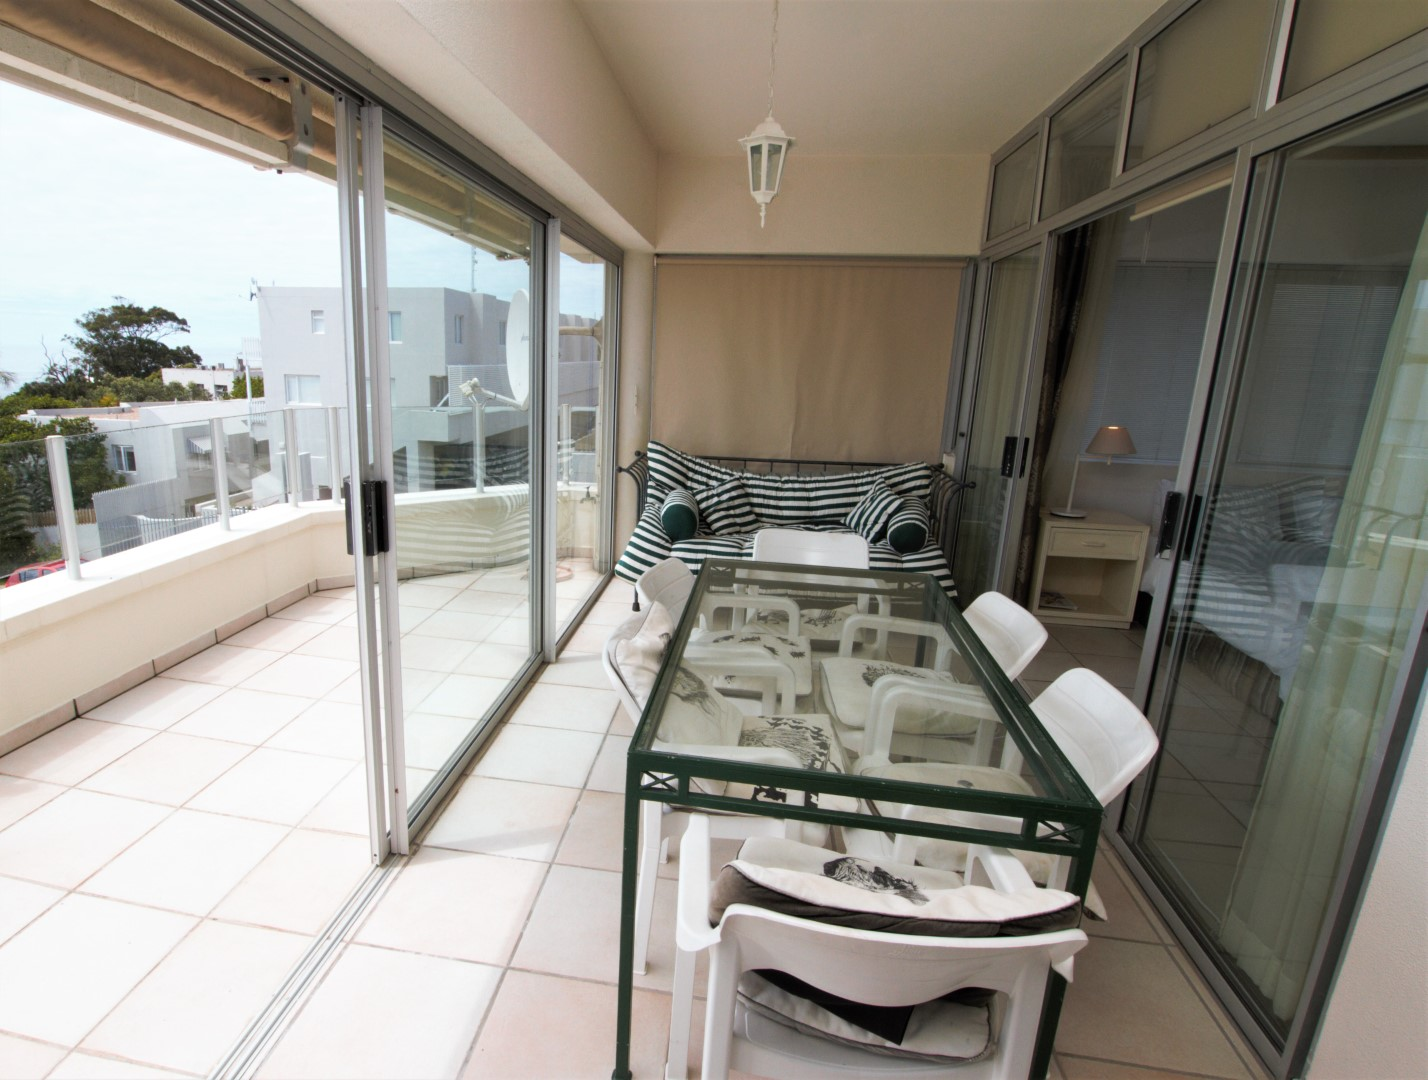 Plettenberg Bay, 6600, 3 Bedrooms Bedrooms, ,3 BathroomsBathrooms,Apartment,For Sale,1049